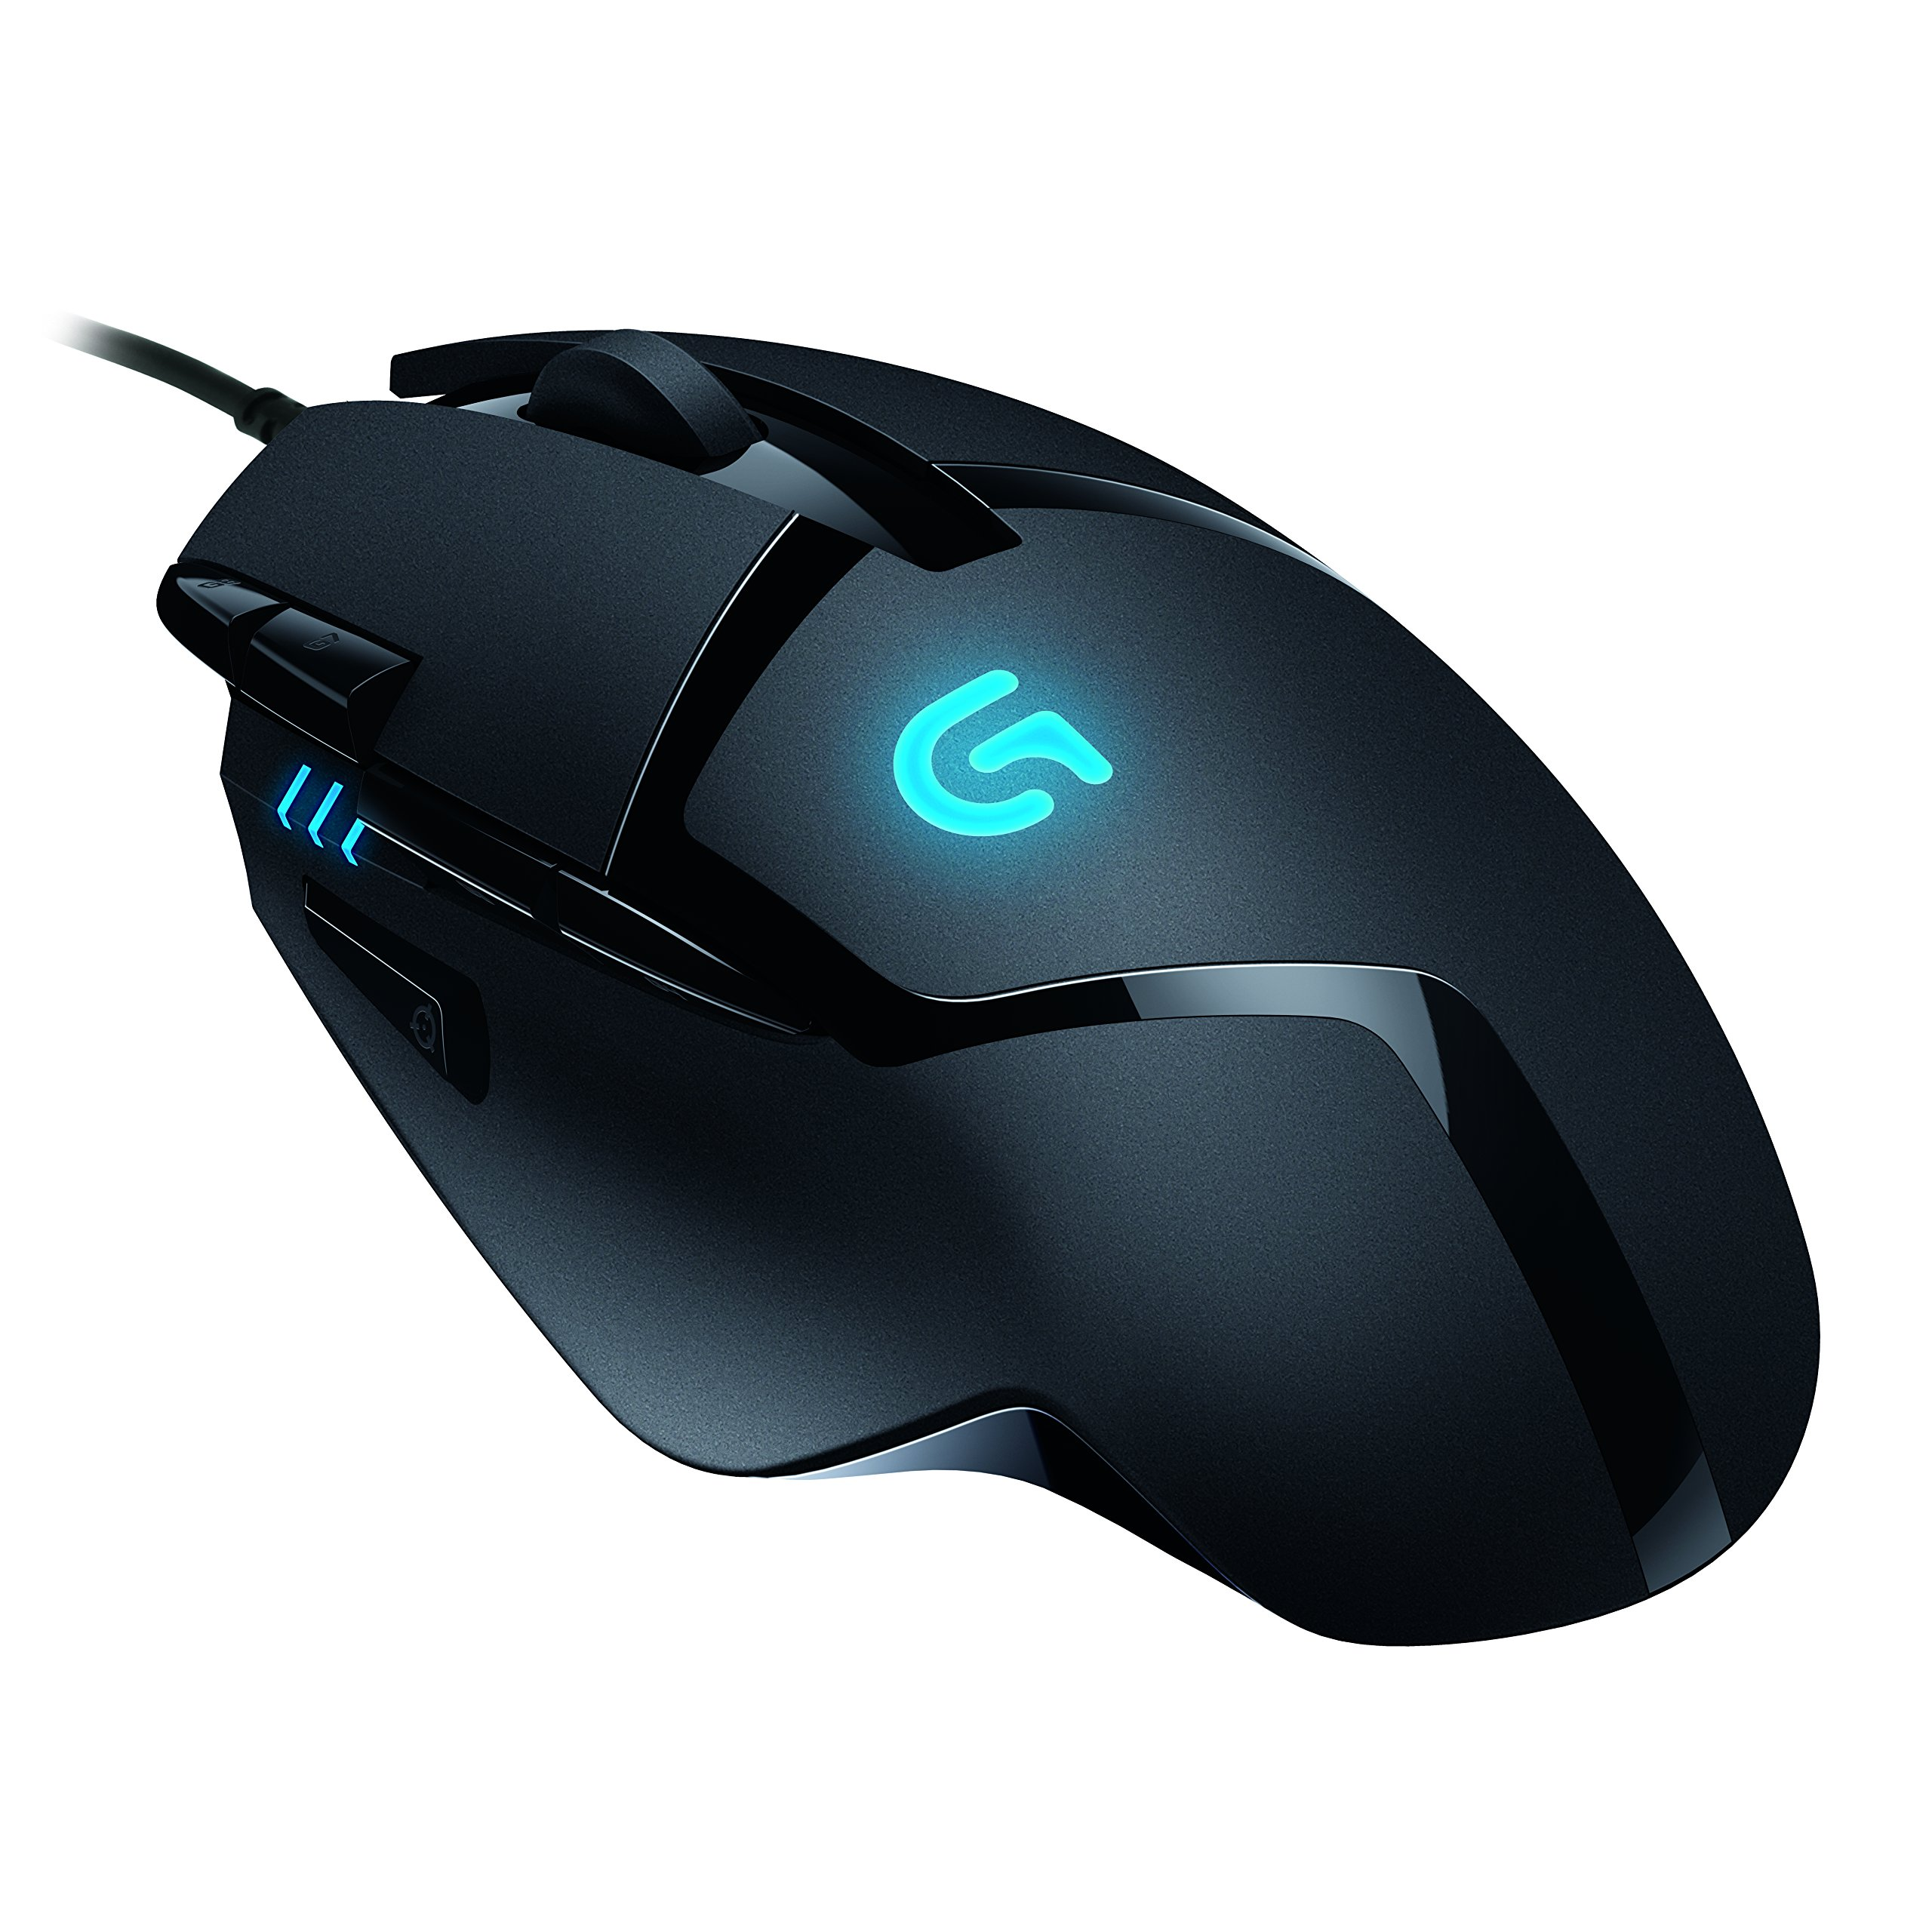 Logitech G402 Optical Gaming Mouse Hyperion Fury USB 8 Buttons, 910-004067 (Hyperion Fury USB 8 Buttons) by Logitech